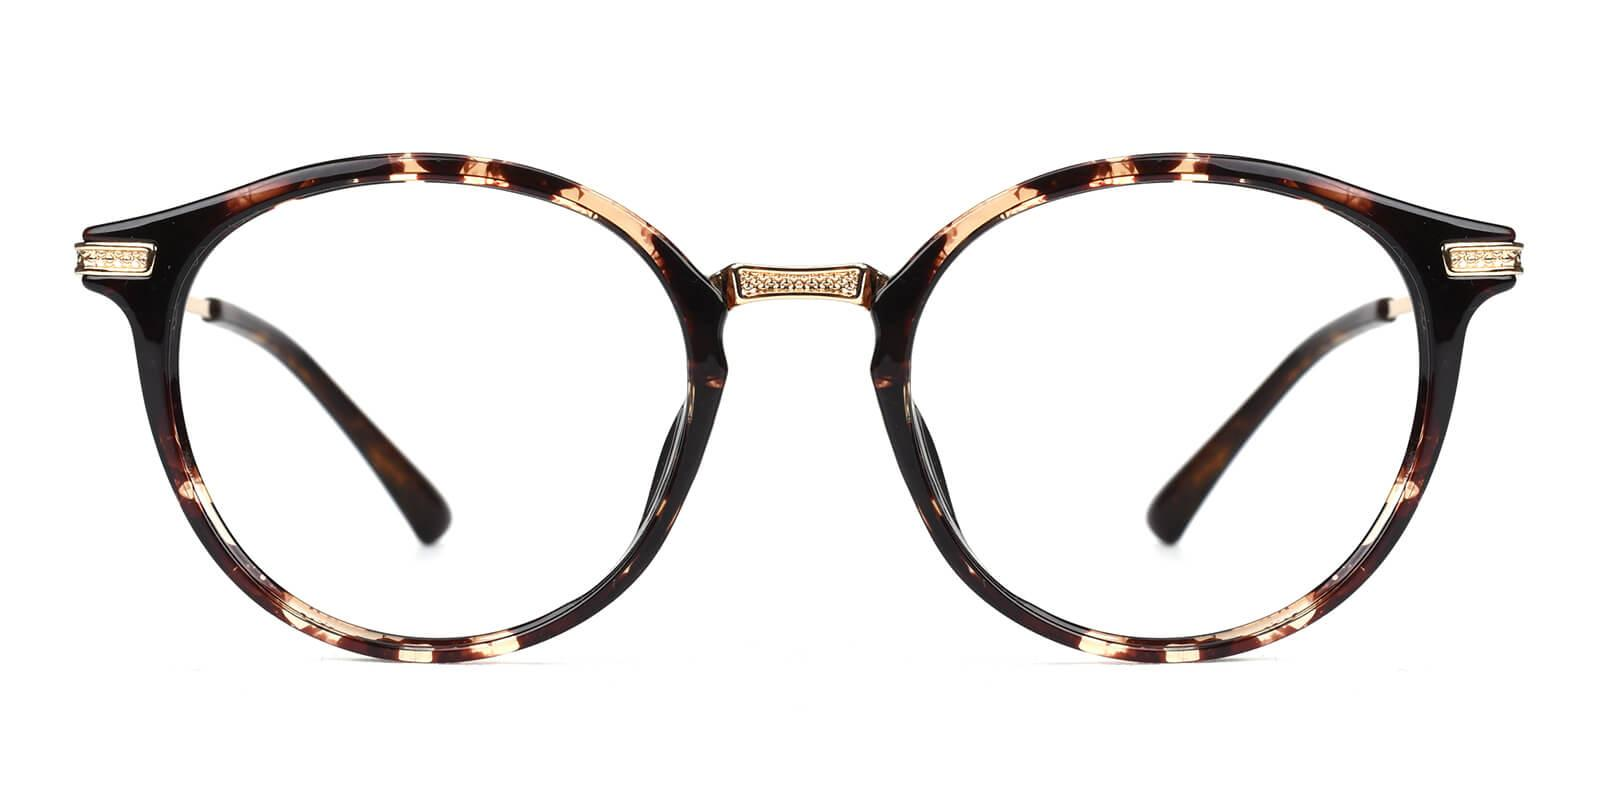 Rebel-Tortoise-Round-Combination-Eyeglasses-additional2